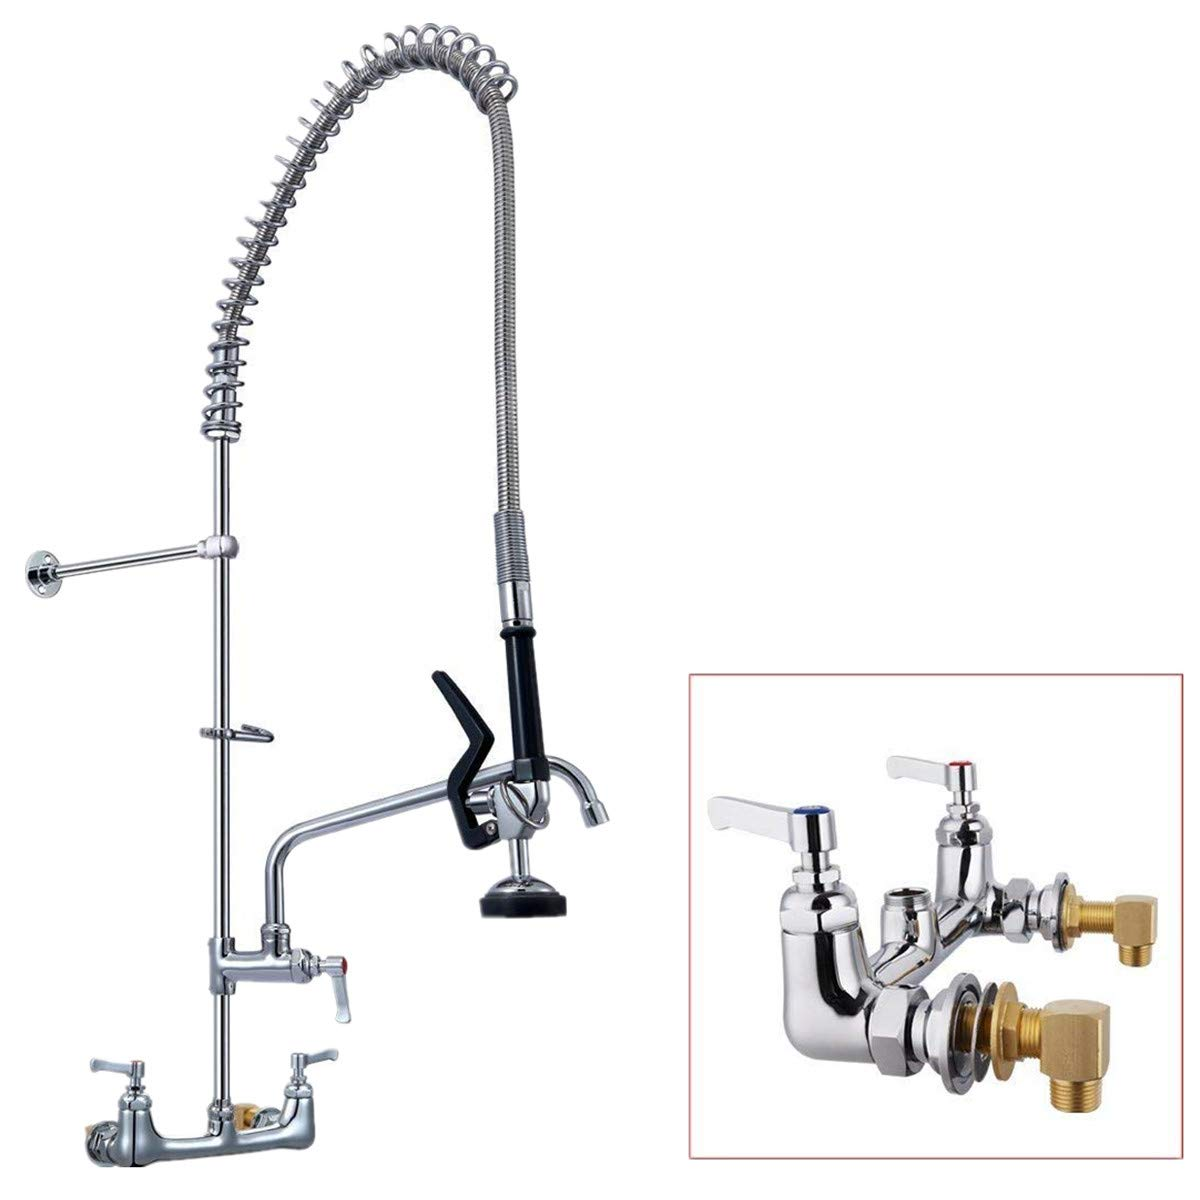 "YG Pre-rinse Kitchen Sink Faucet Spray 8""(203mm) Center Wall Mounted Type Heavy Duty Construction 20""(510mm) Riser Brass Pipe 44""(1118mm)Flexible Stainless Steel Hose Color Chrome YG-5803b"